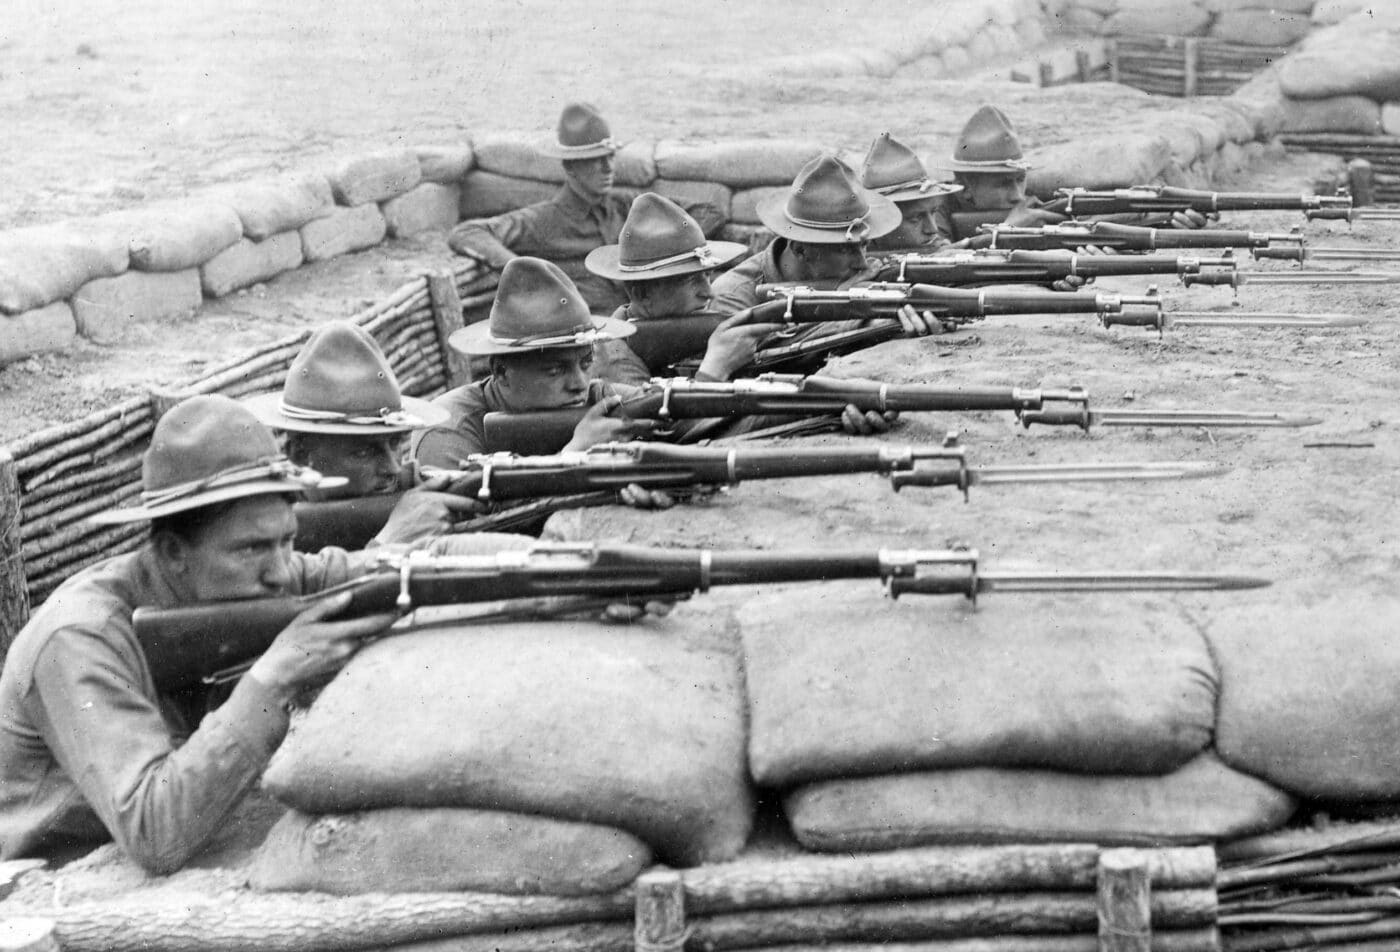 US Army recruits training with M1903 rifles